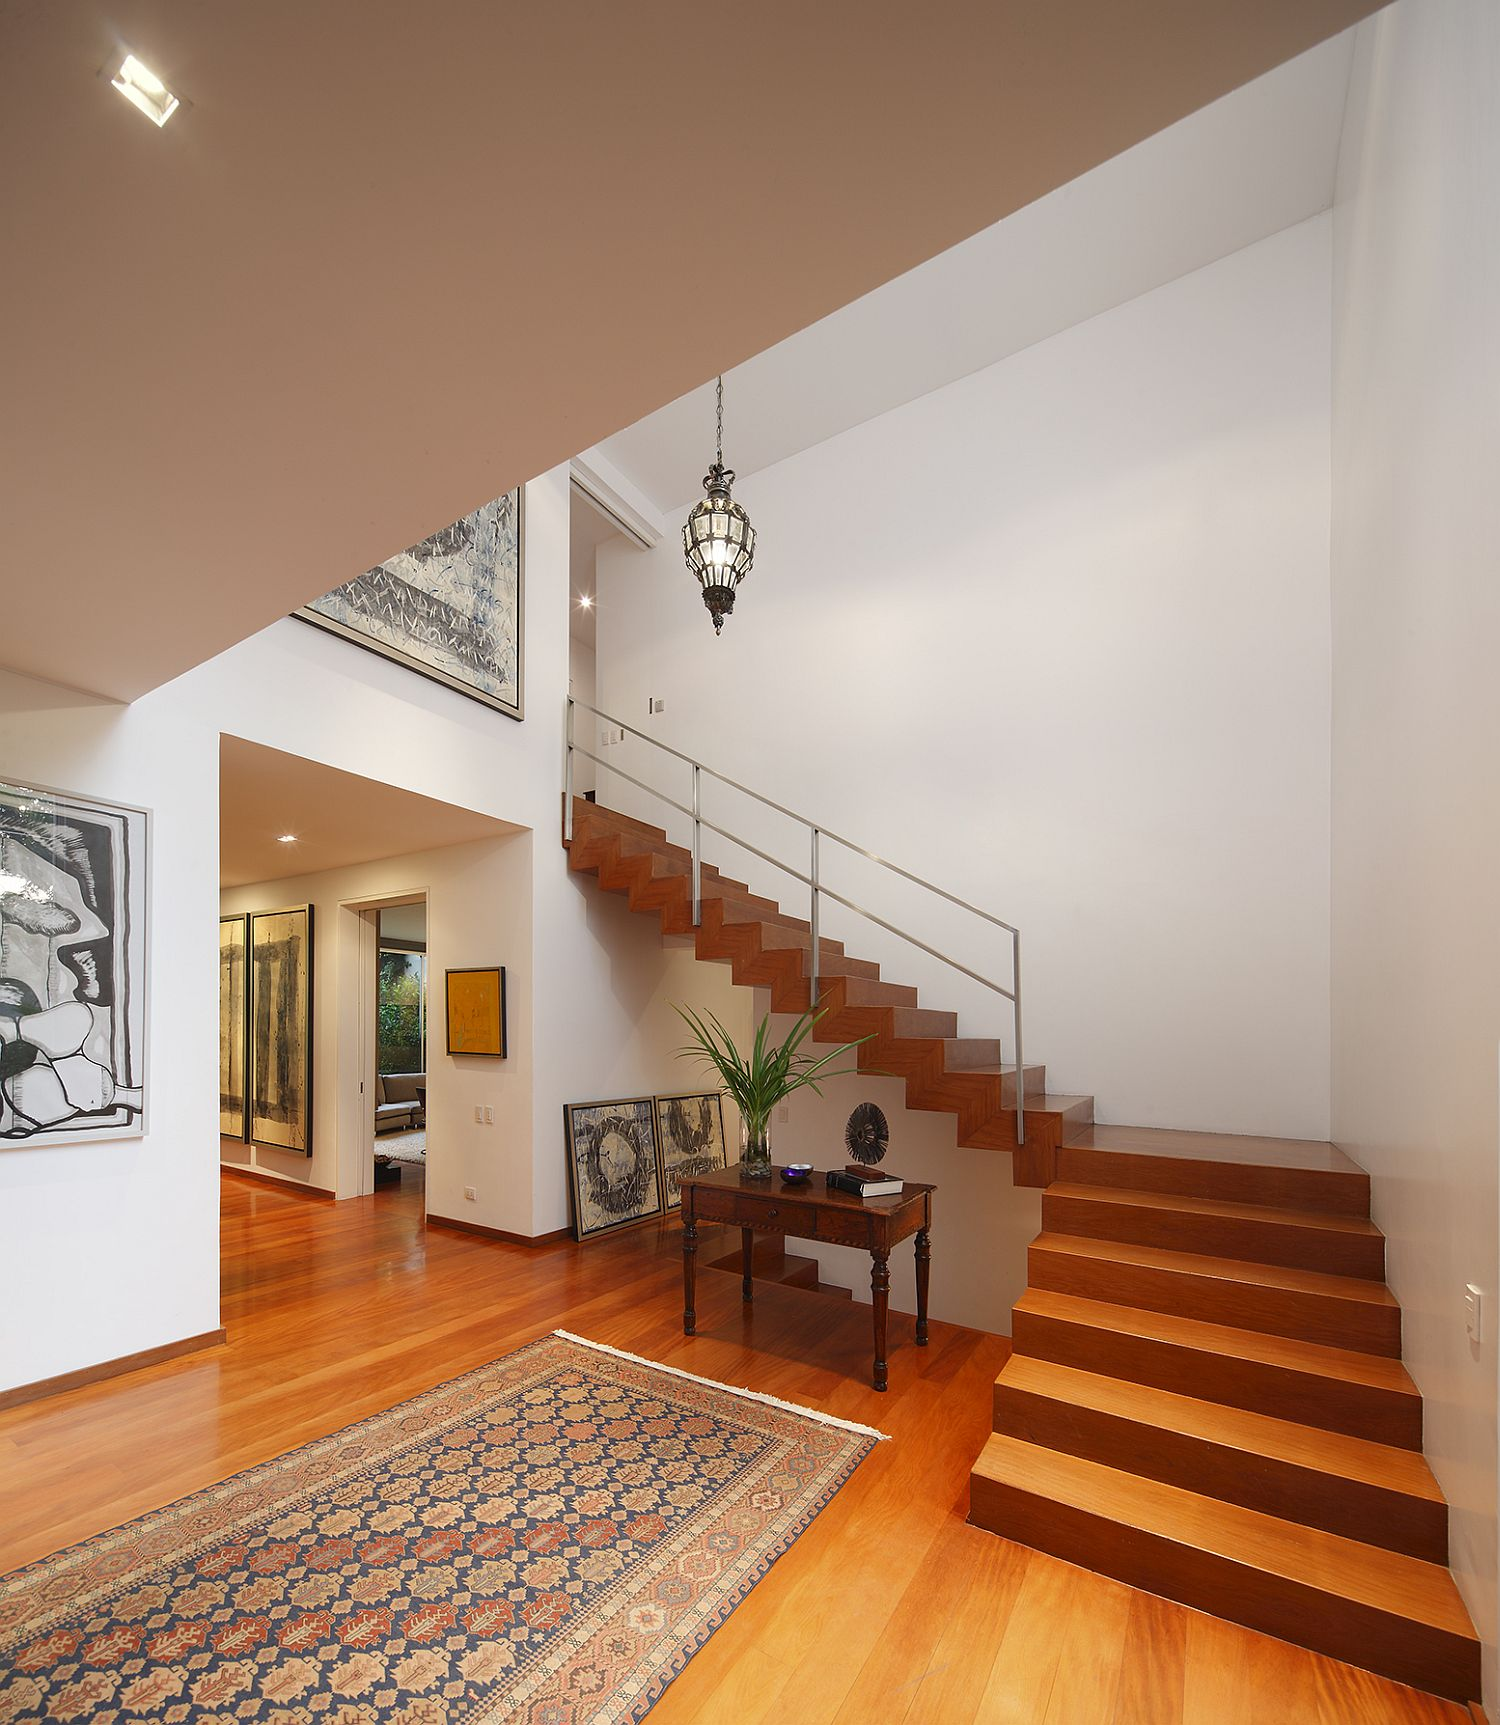 Wooden staircase connects the lower level with the top floor